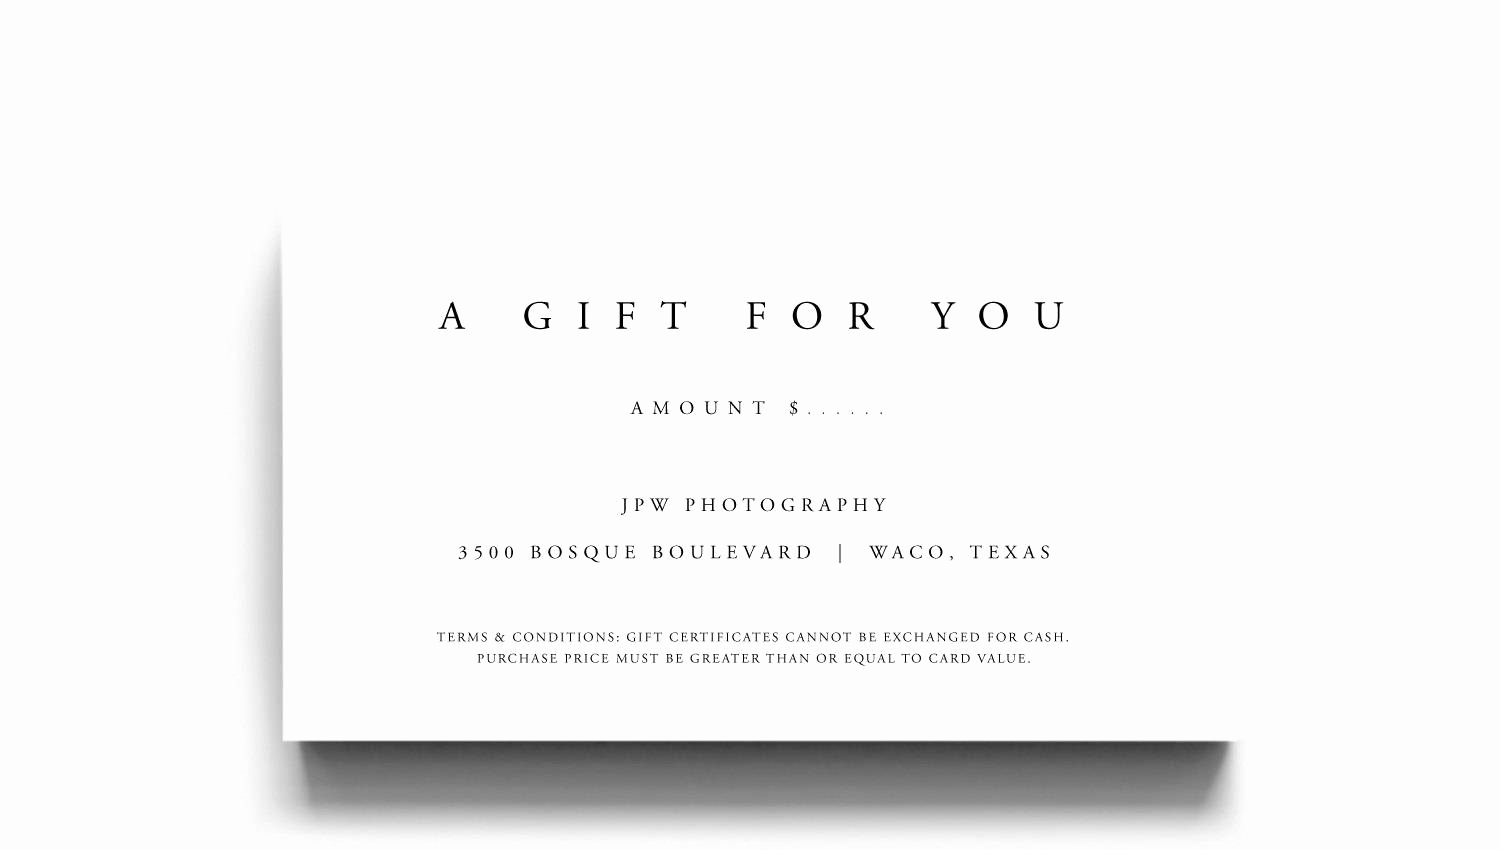 Sample Gift Certificate Template Best Of Gift Certificate Template A Gift for You Gift Voucher